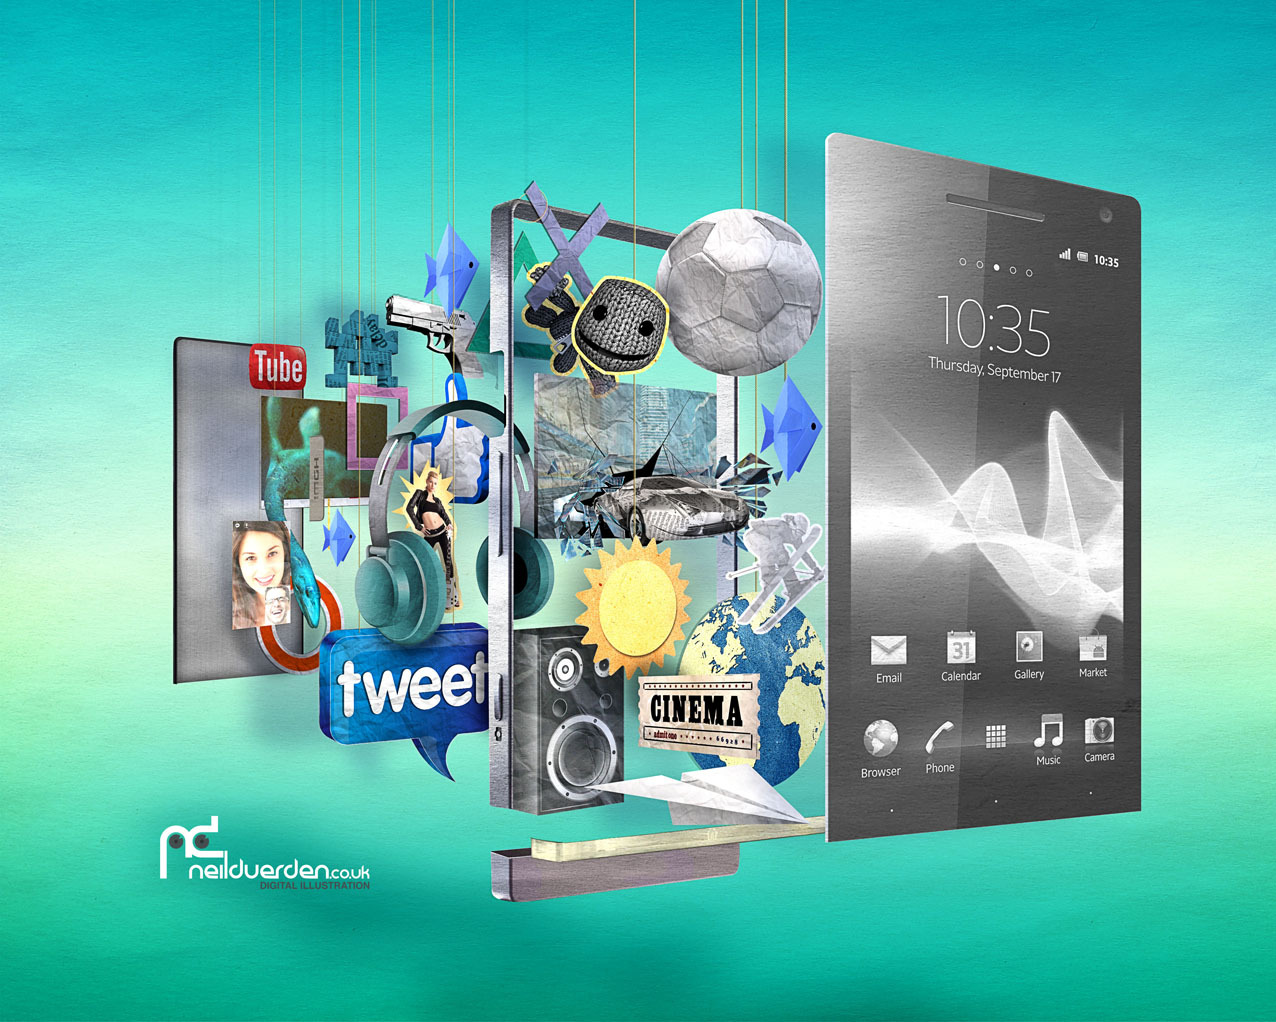 rawbdz:  Sony Experia advert